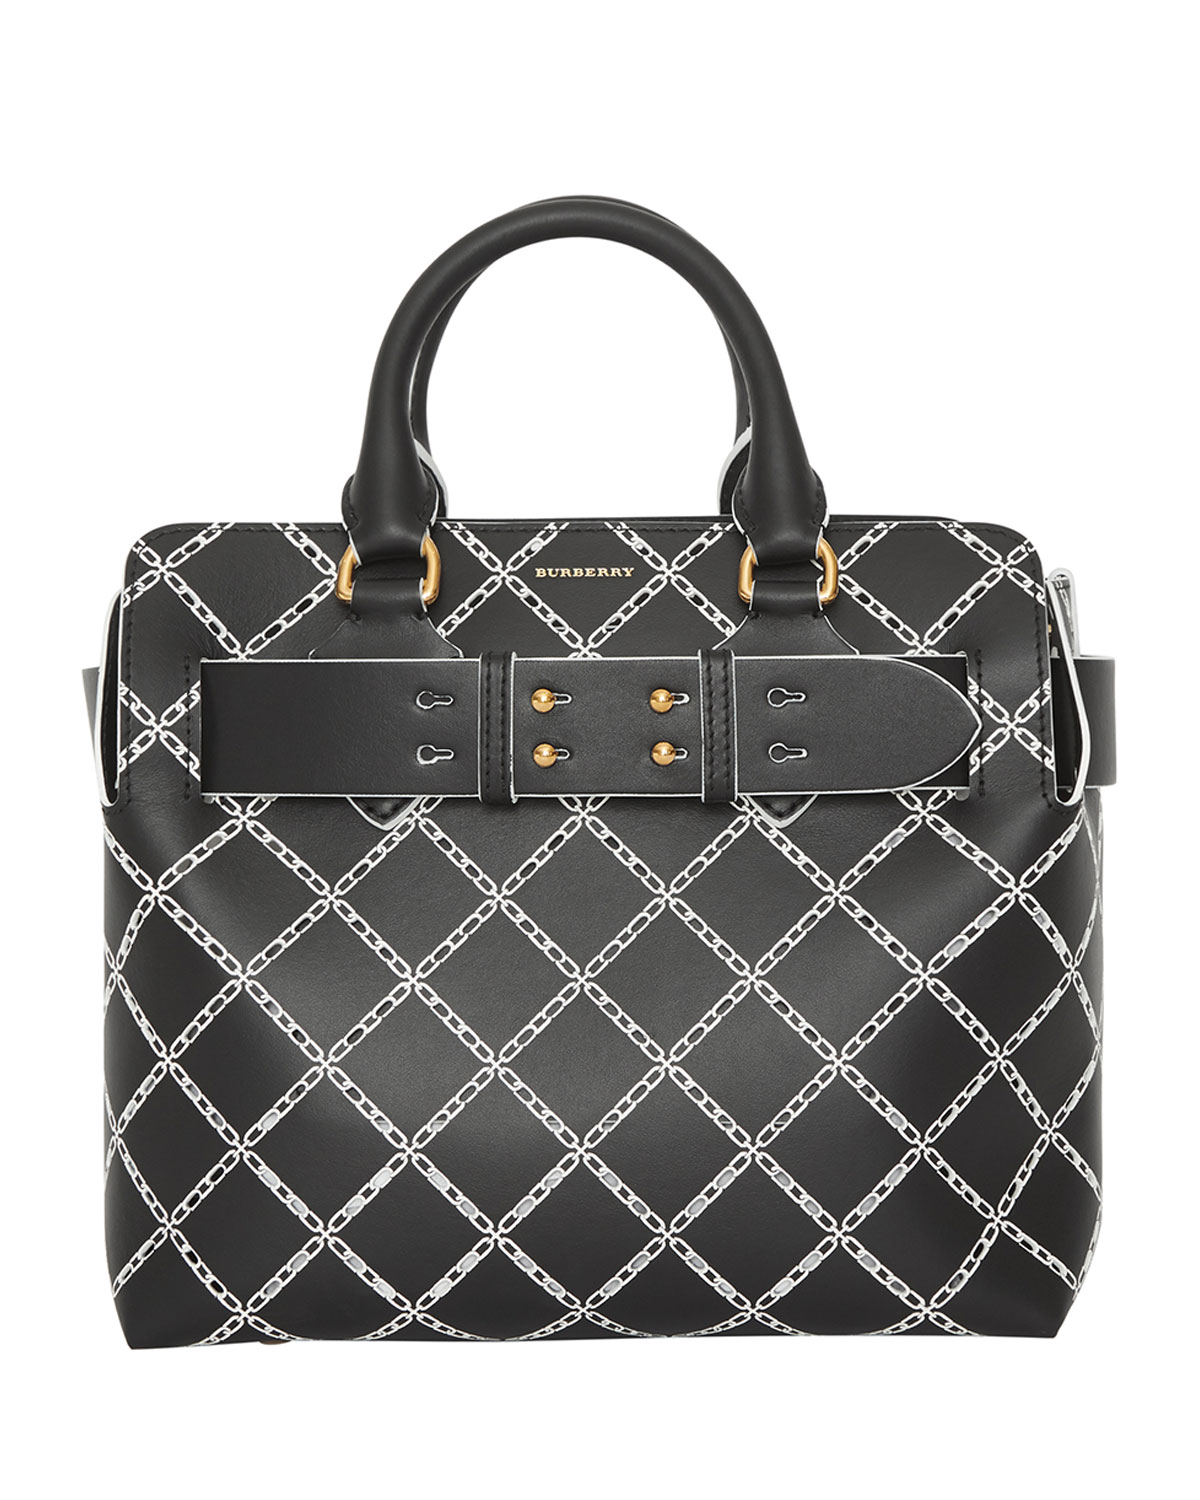 2c201ba5cc6c Burberry Small Belted Perforated Satchel Bag